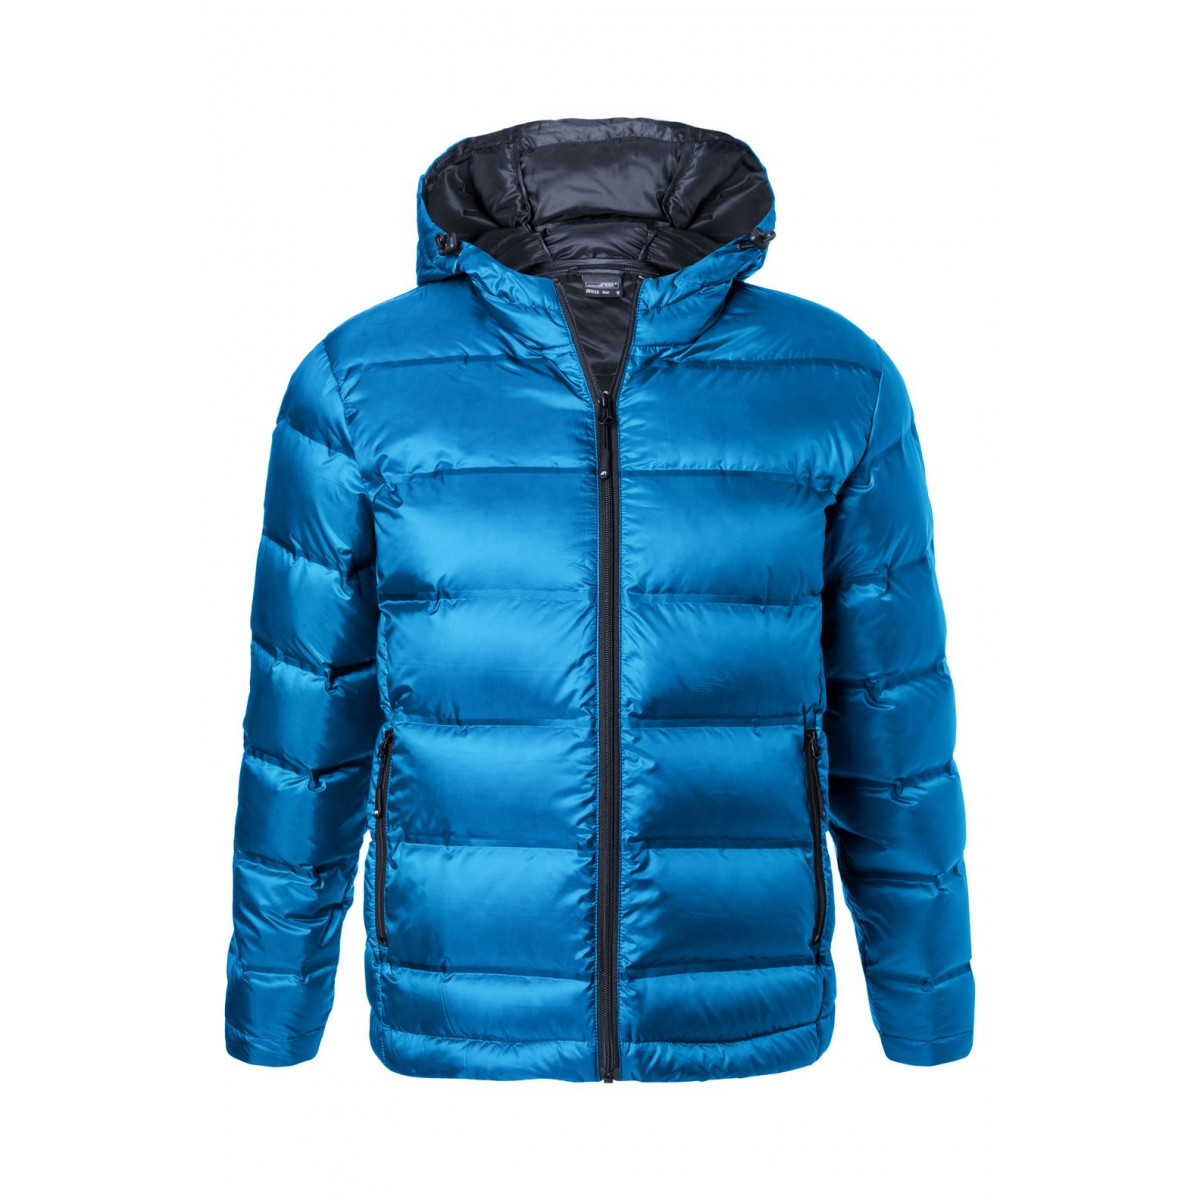 Куртка мужская JN1152 Mens Hooded Down Jacket - Синий/Темно-синий